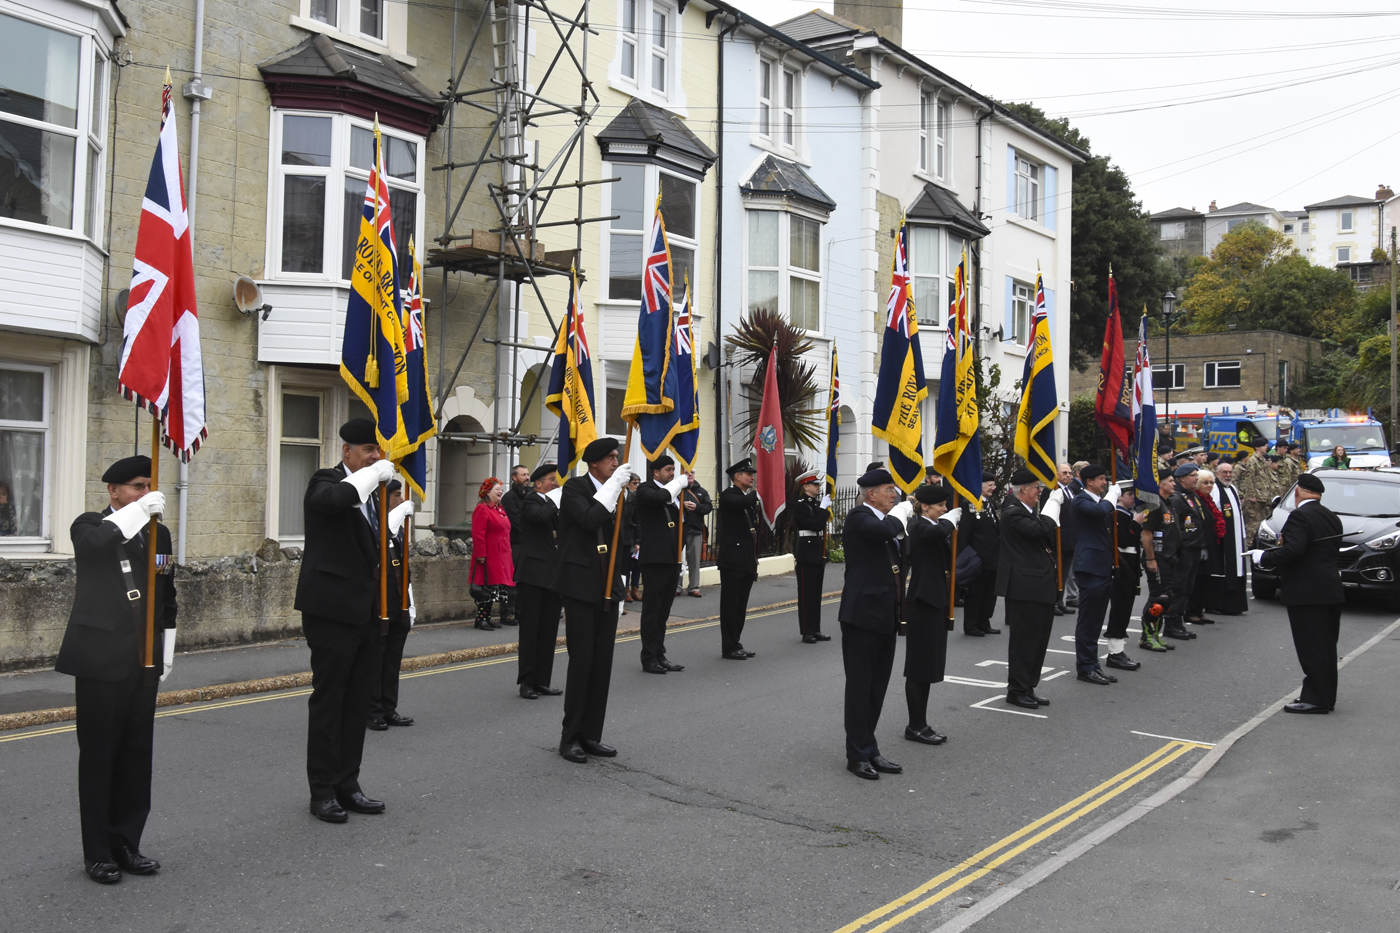 20161029_stp_3603-hss-launch-of-the-poppy-appeal-2016-in-ventnor